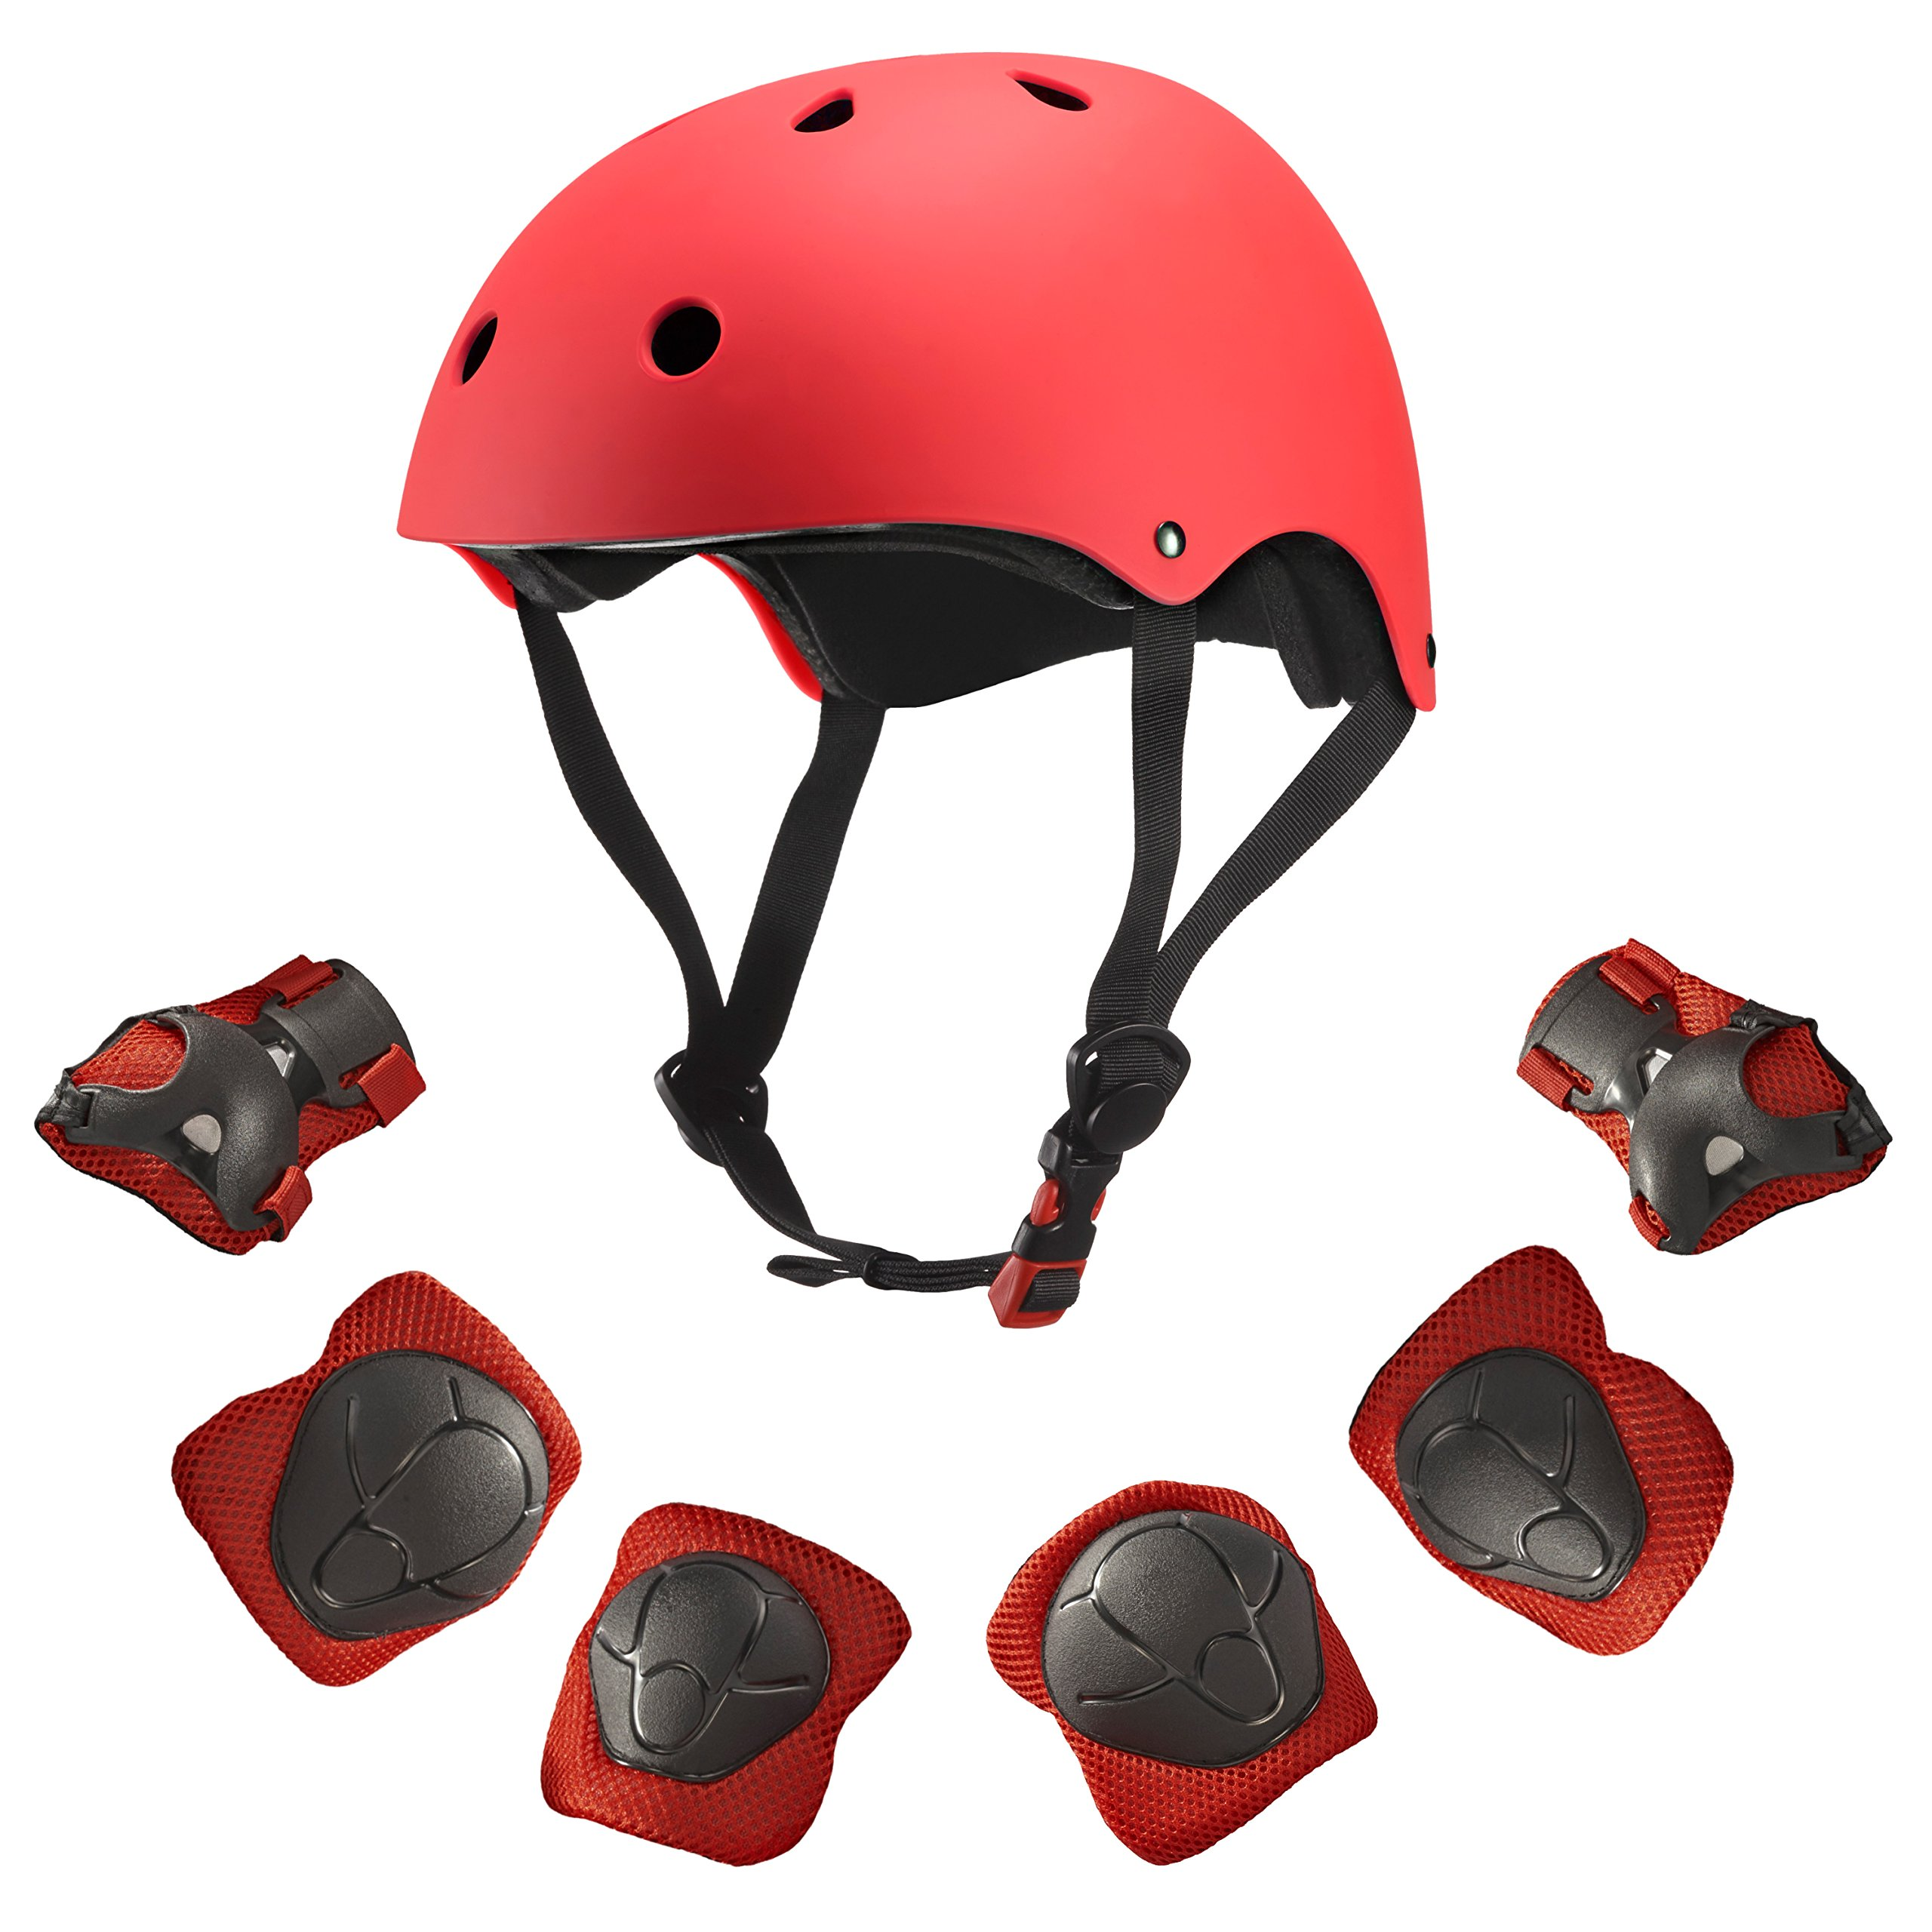 Dostar Kids Youth Adjustable Sports Protective Gear Set Safety Pad Safeguard (Helmet Knee Elbow Wrist) Roller Bicycle BMX Bike Skateboard Hoverboard and Other Extreme Sports Activities (Red)